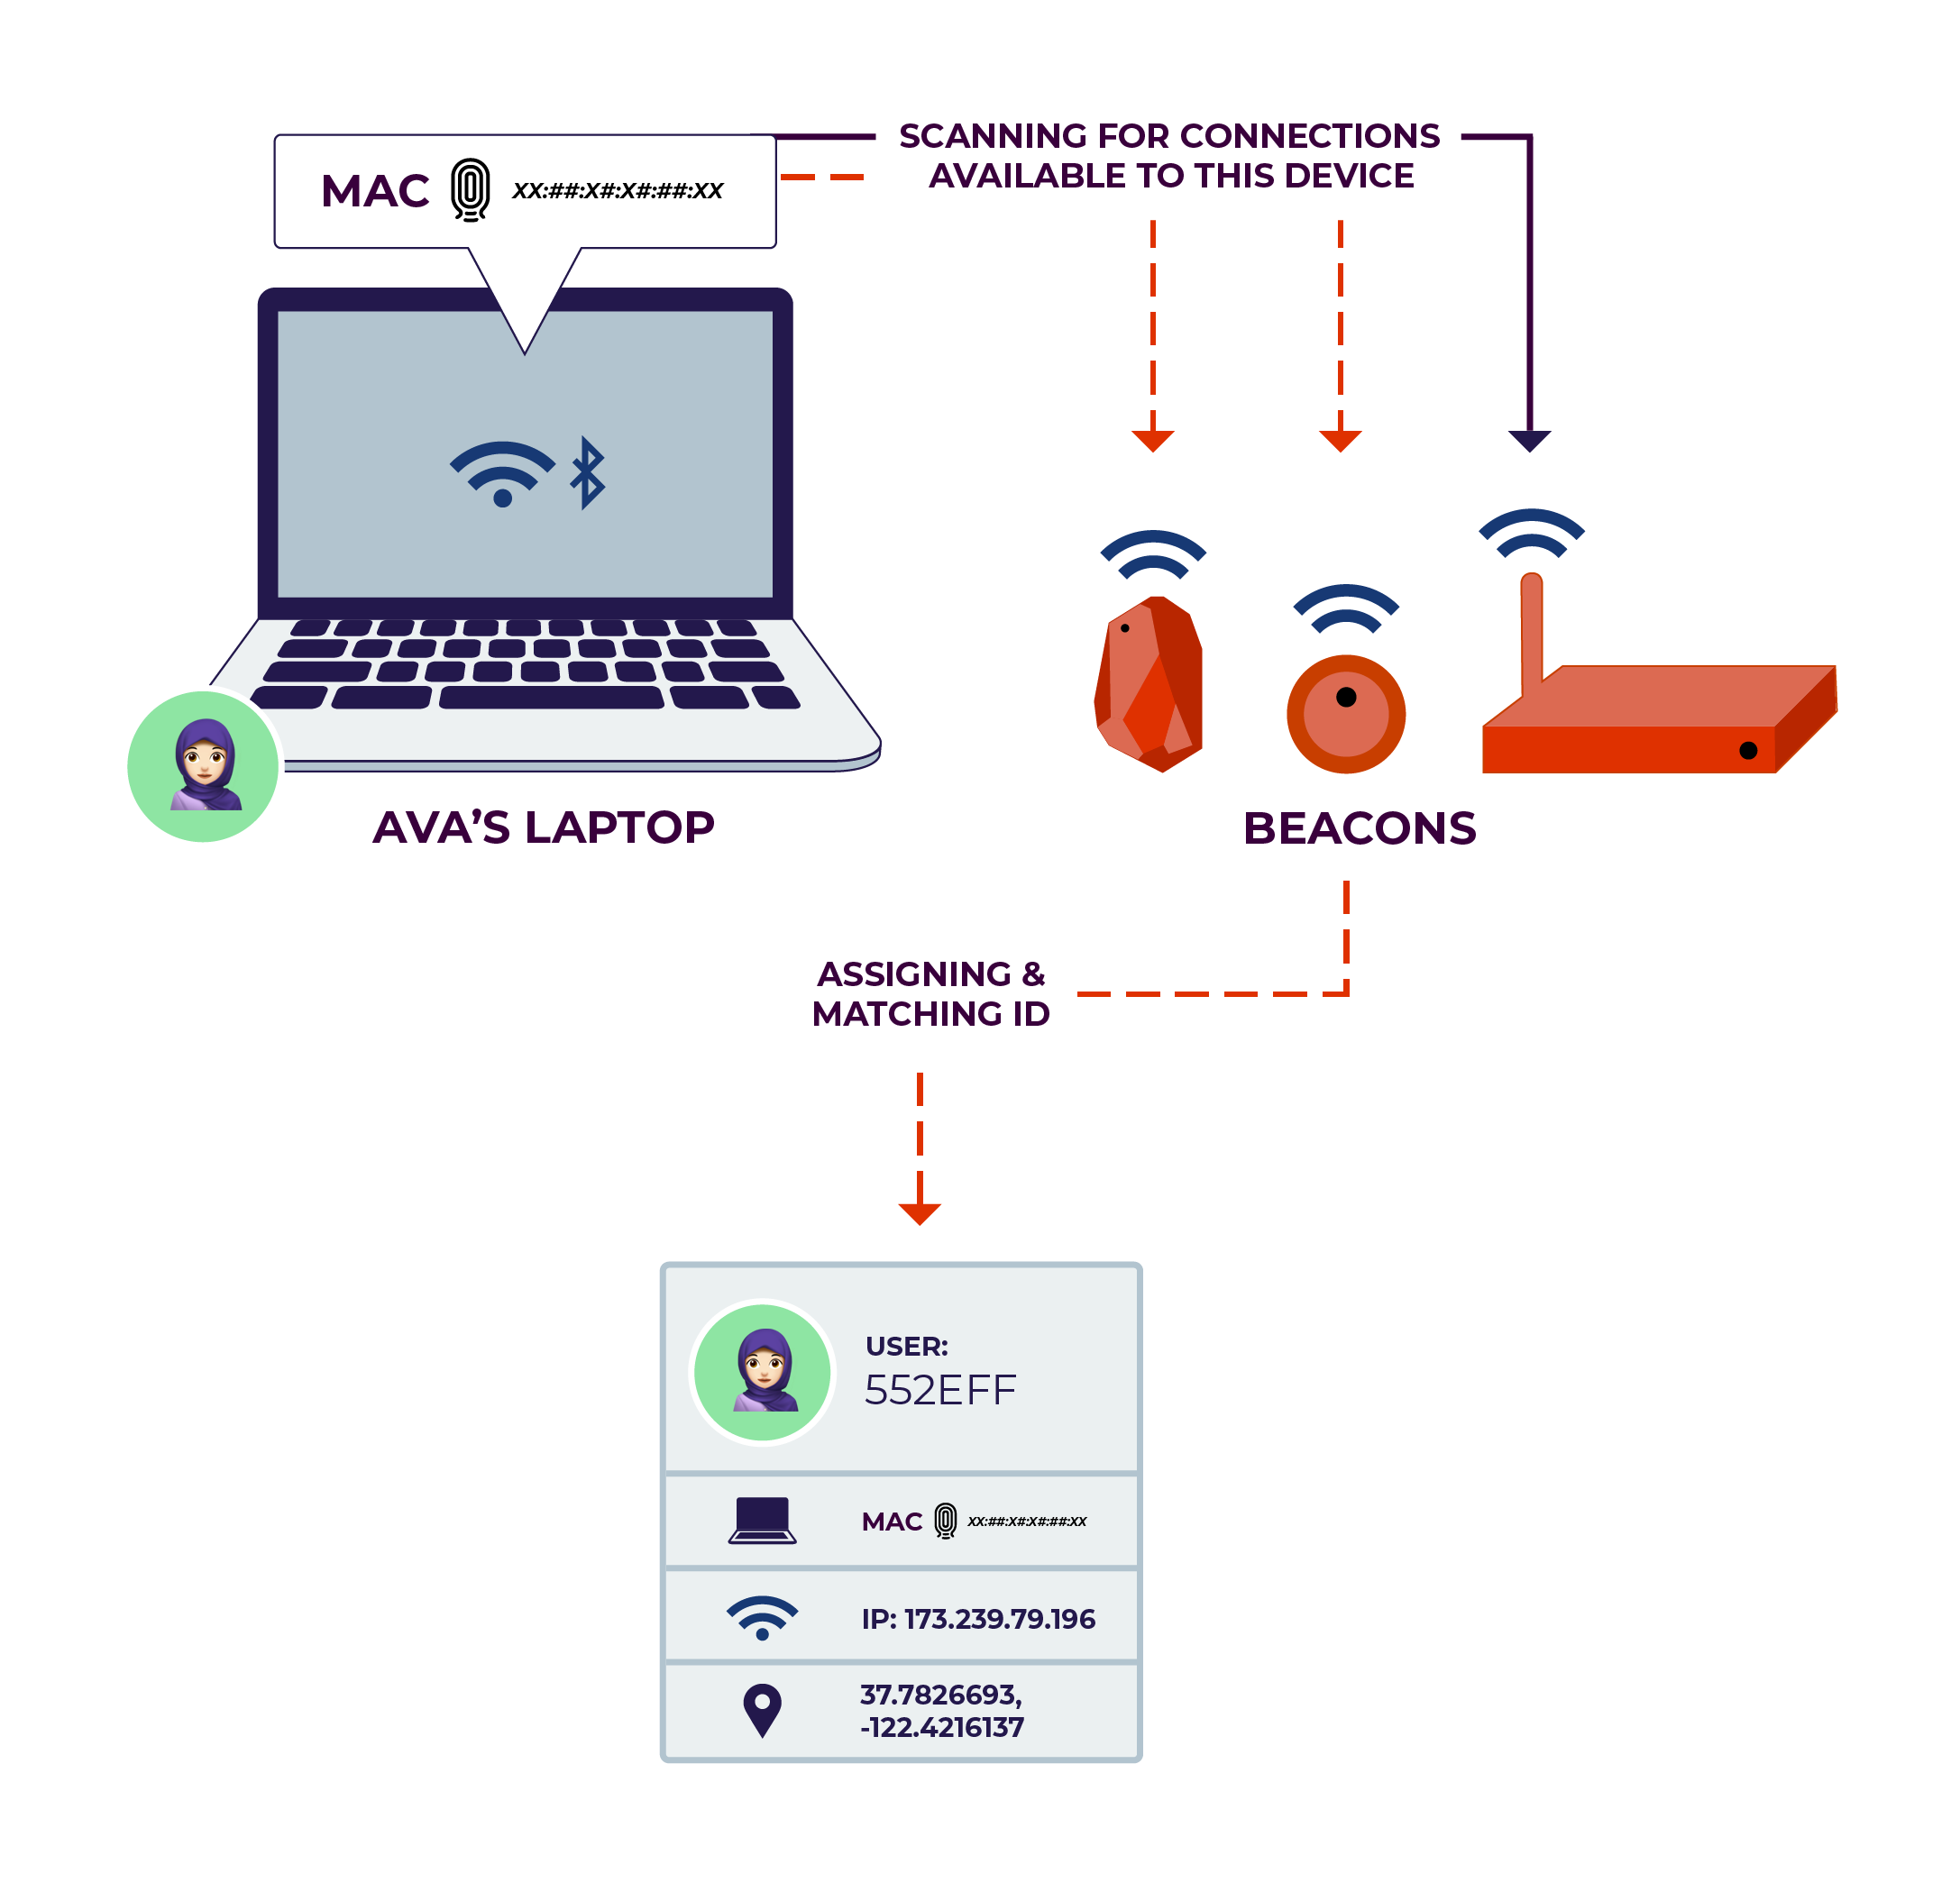 A laptop emits probe requests containing its a MAC address. Wireless Bbeacons listen for the probes and tie the requests to a profile of the user.